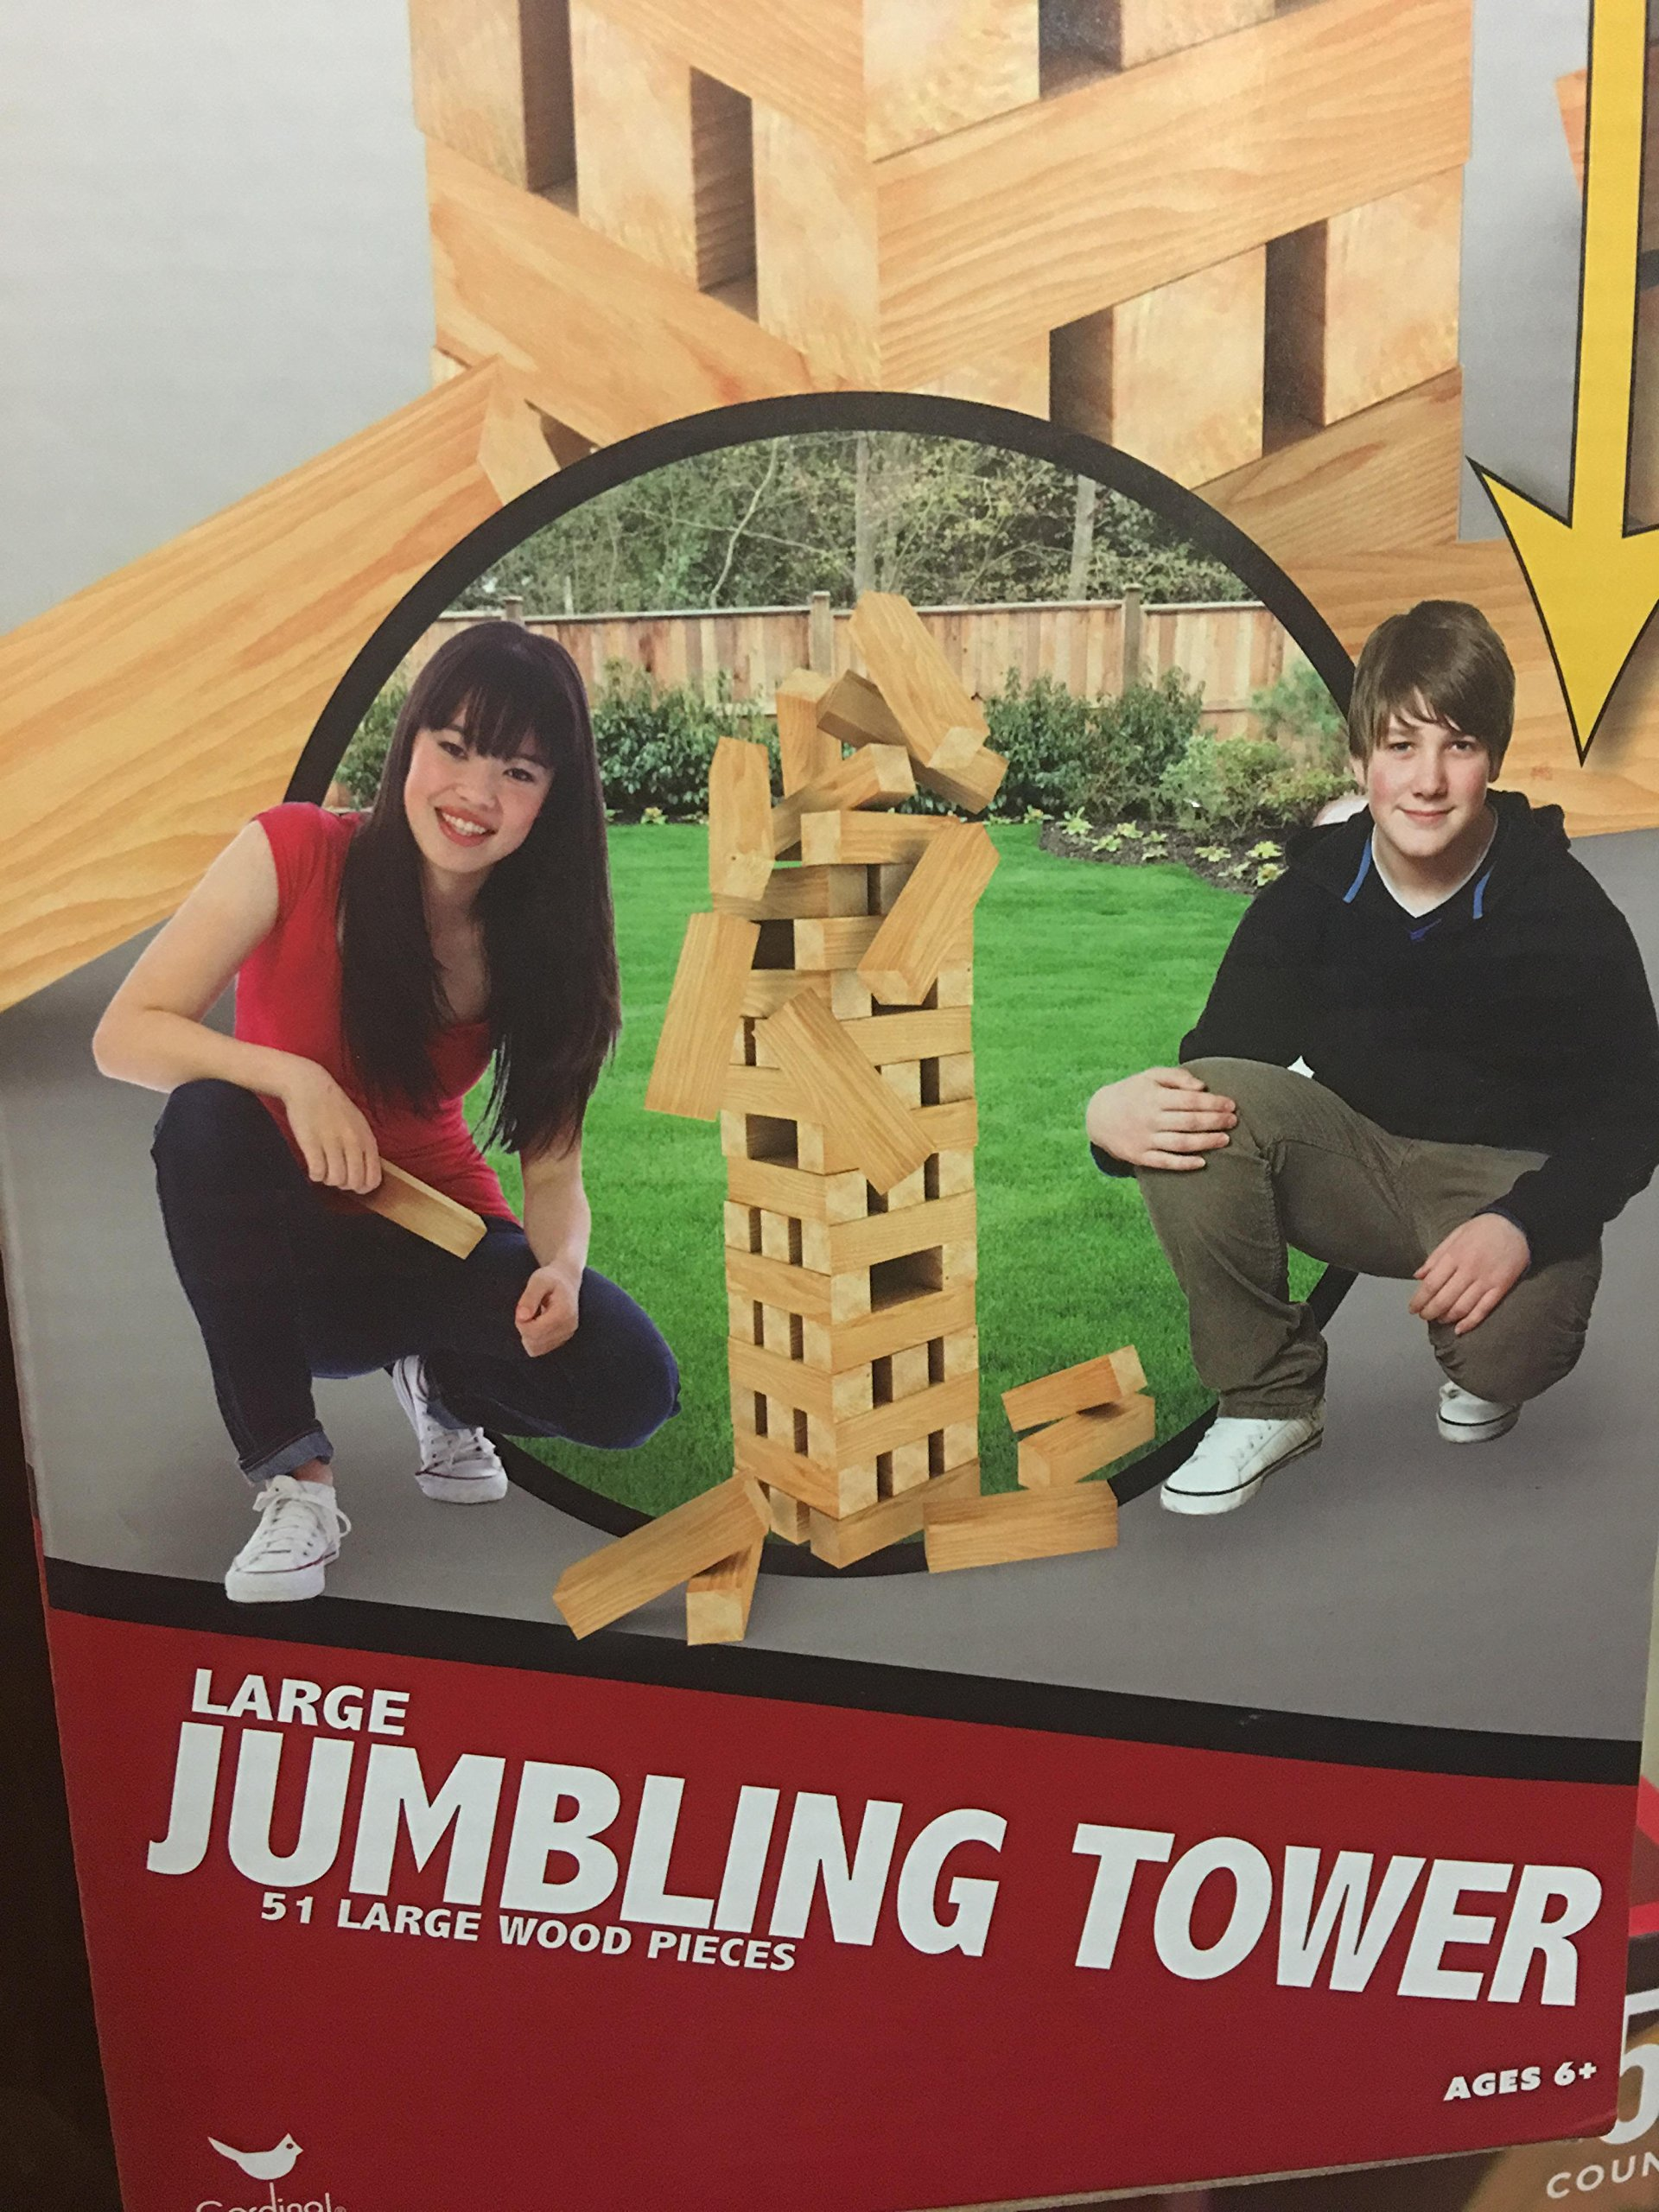 Large Jumbling tower 17 inches tall 51 large wood pieces